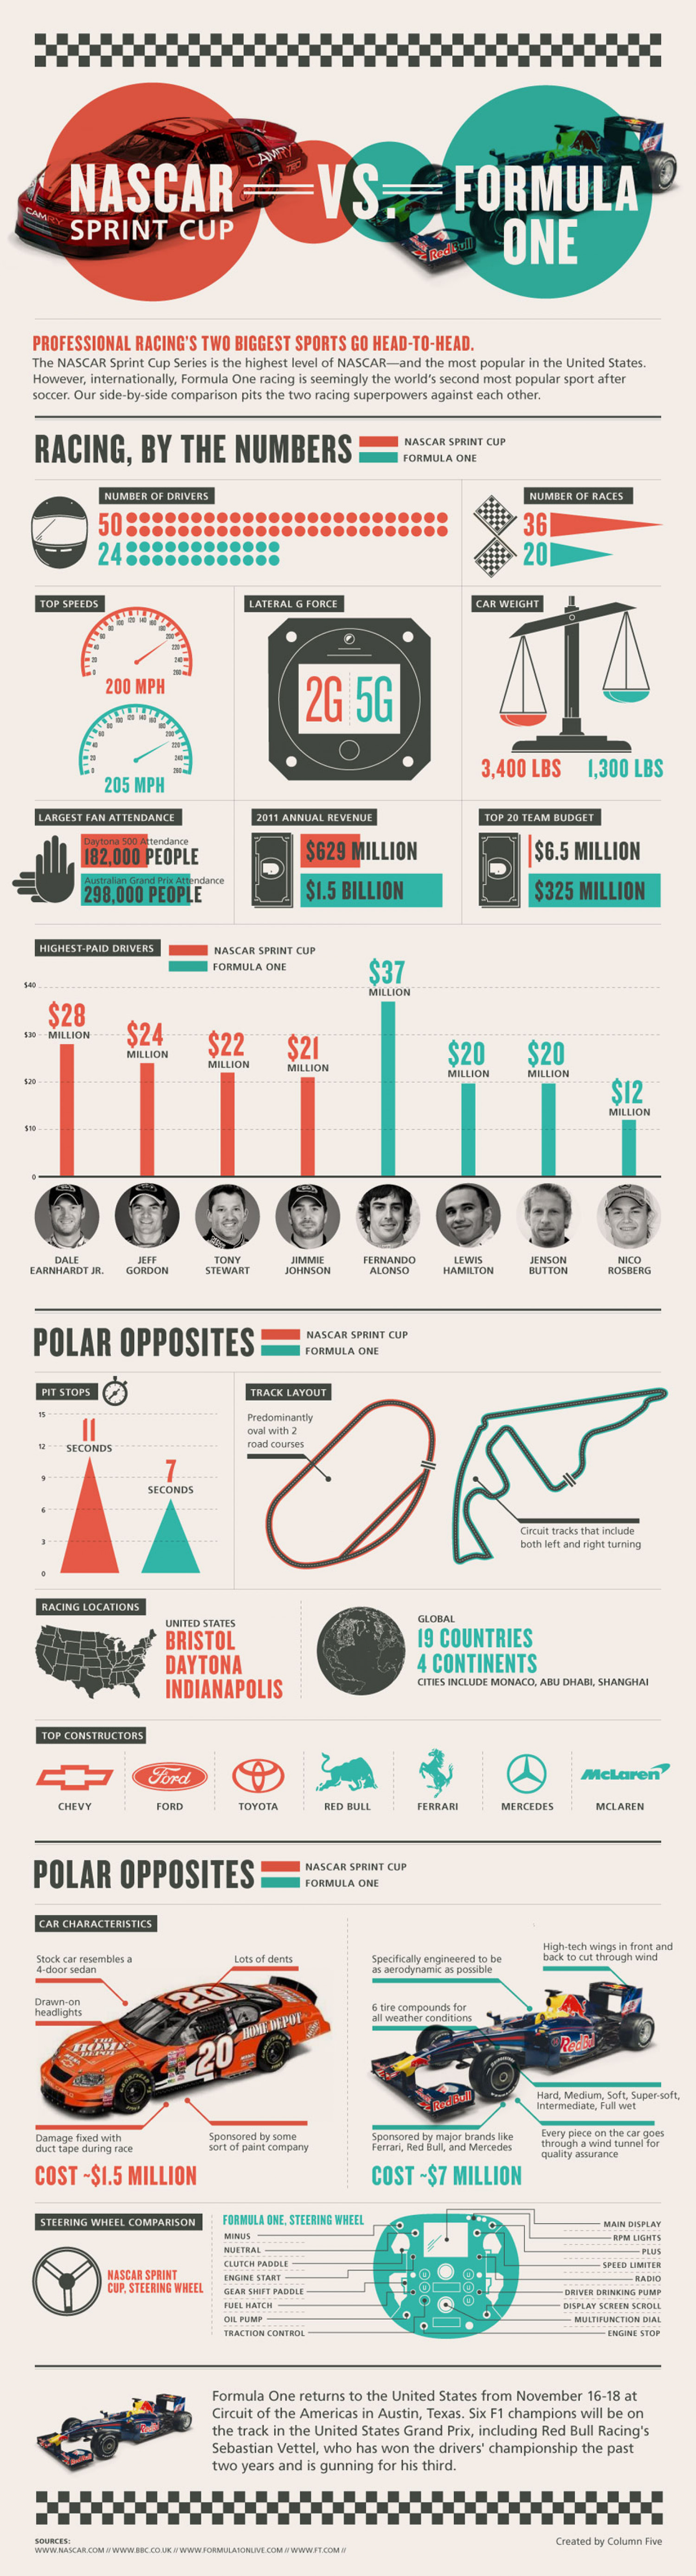 NASCAR Sprint Cup Vs Formula One Infographic